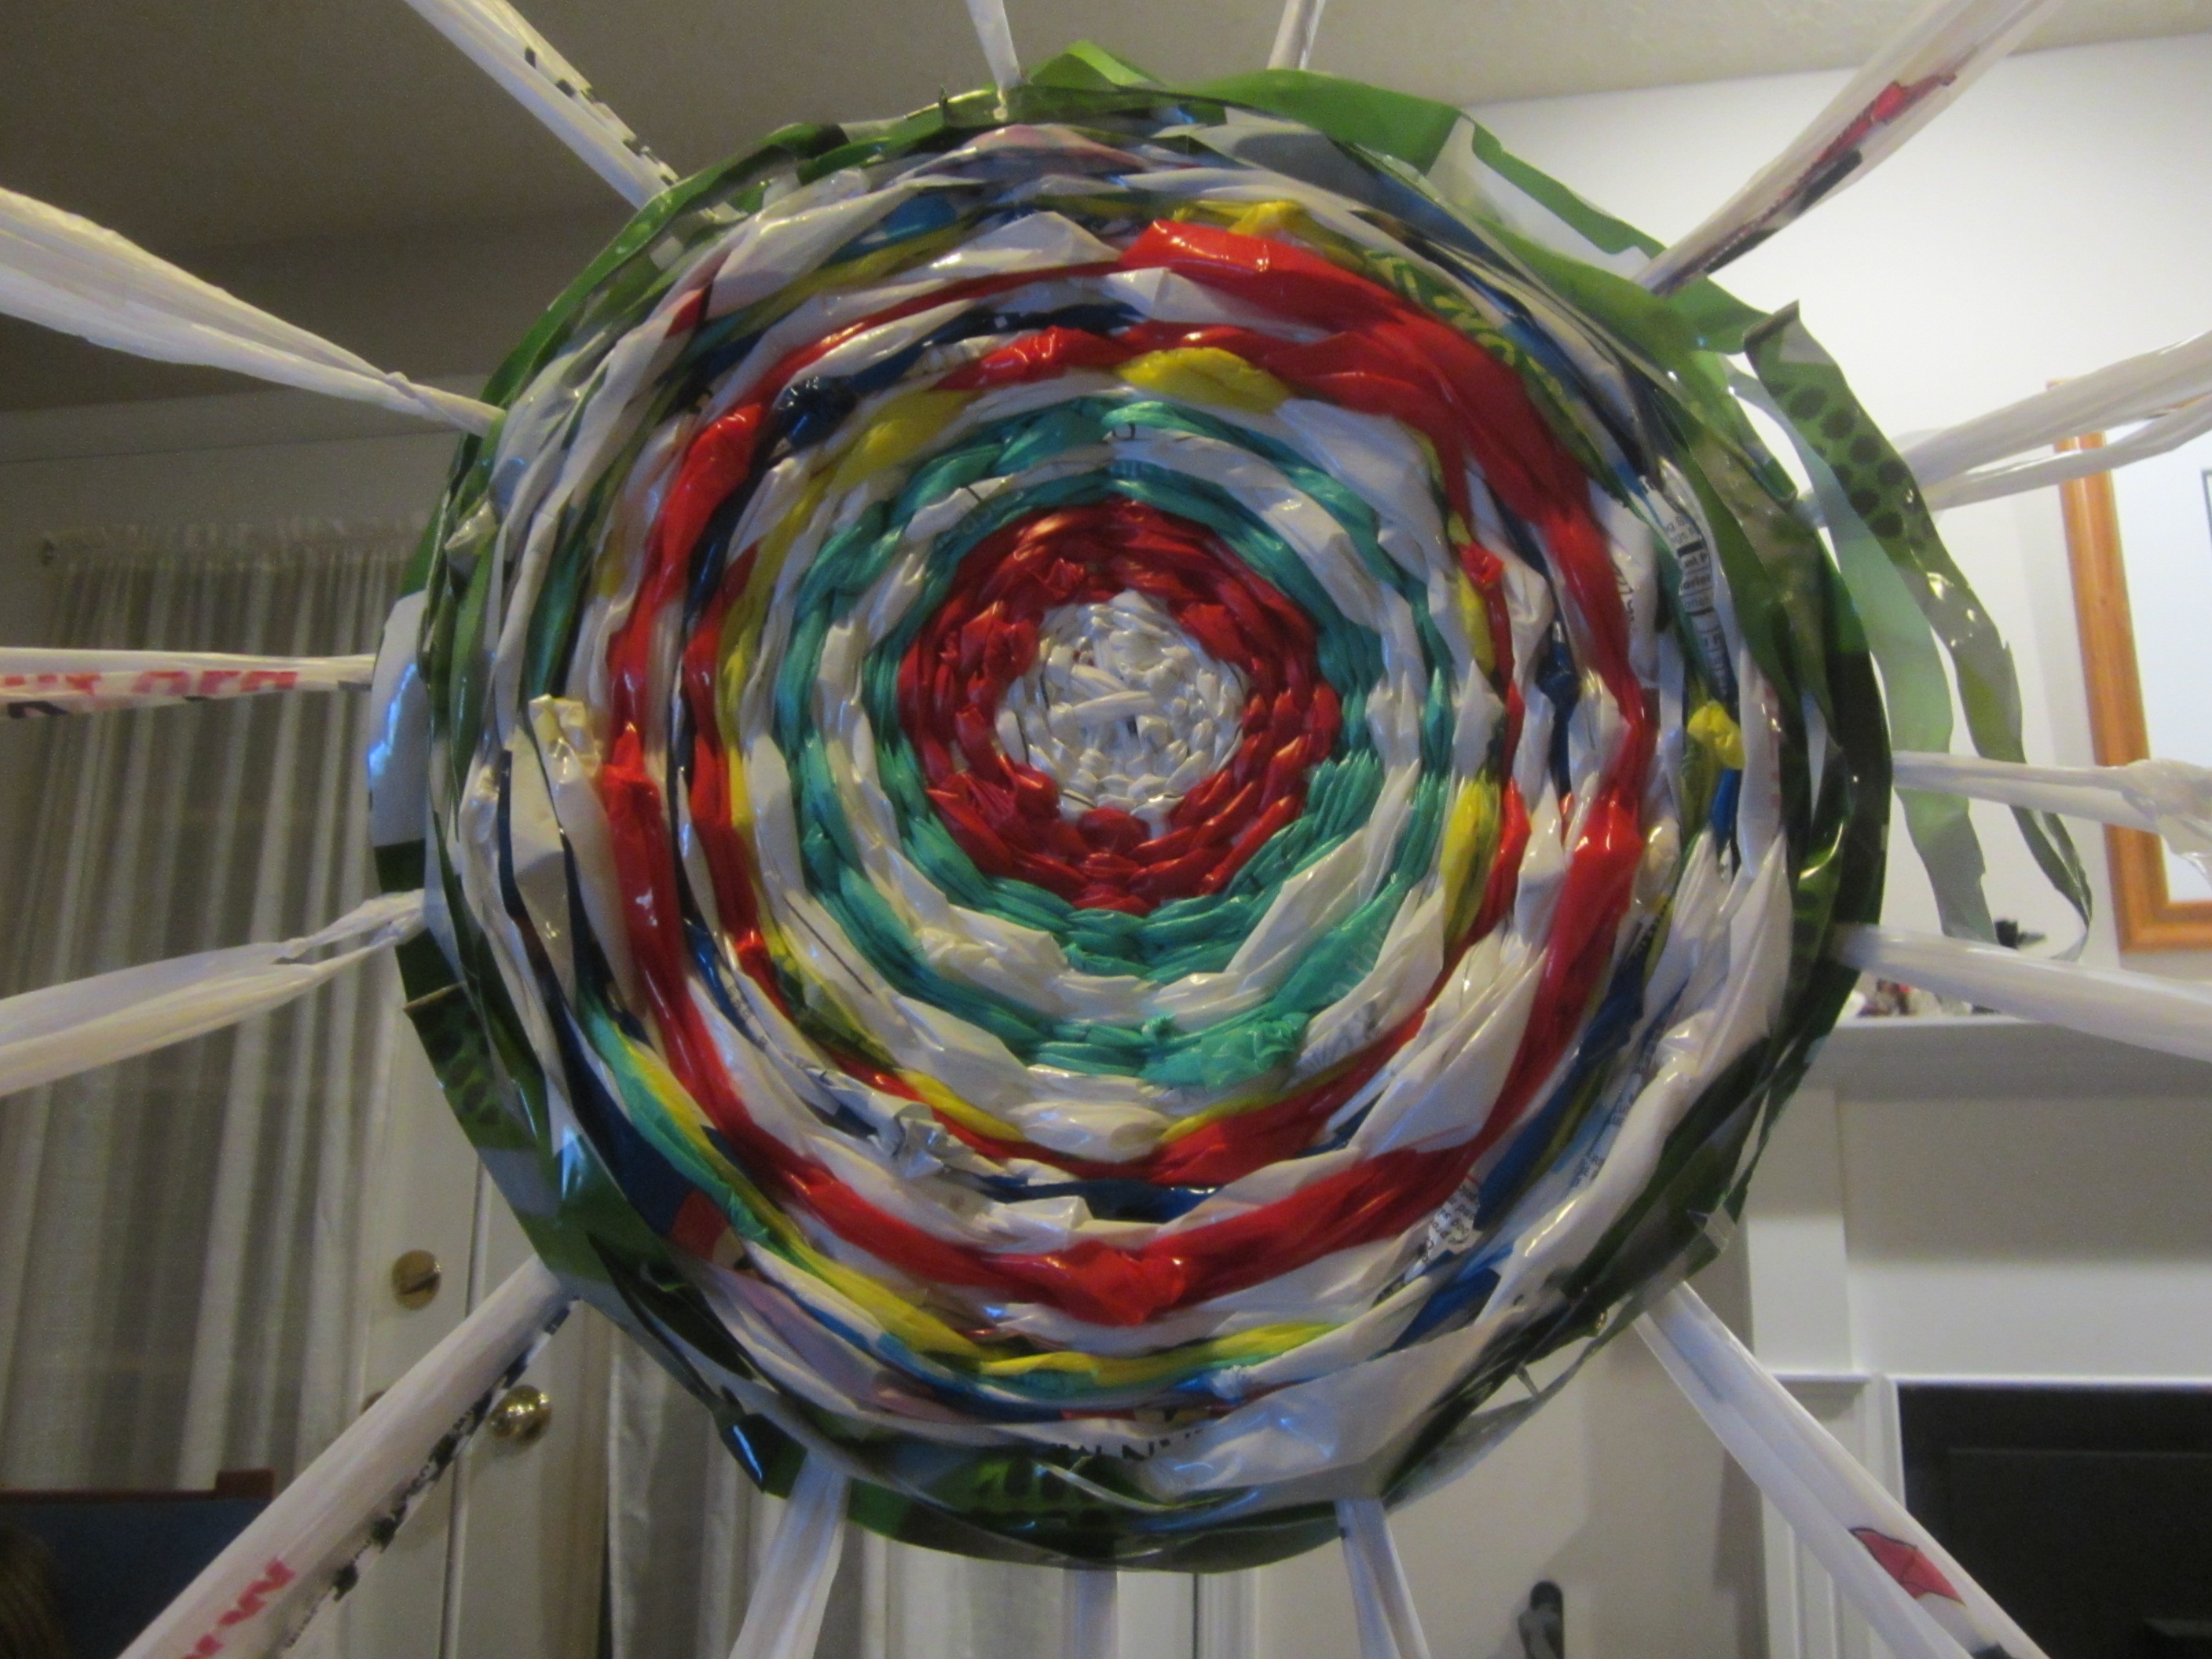 Woven spiral made from recycled plastic bags